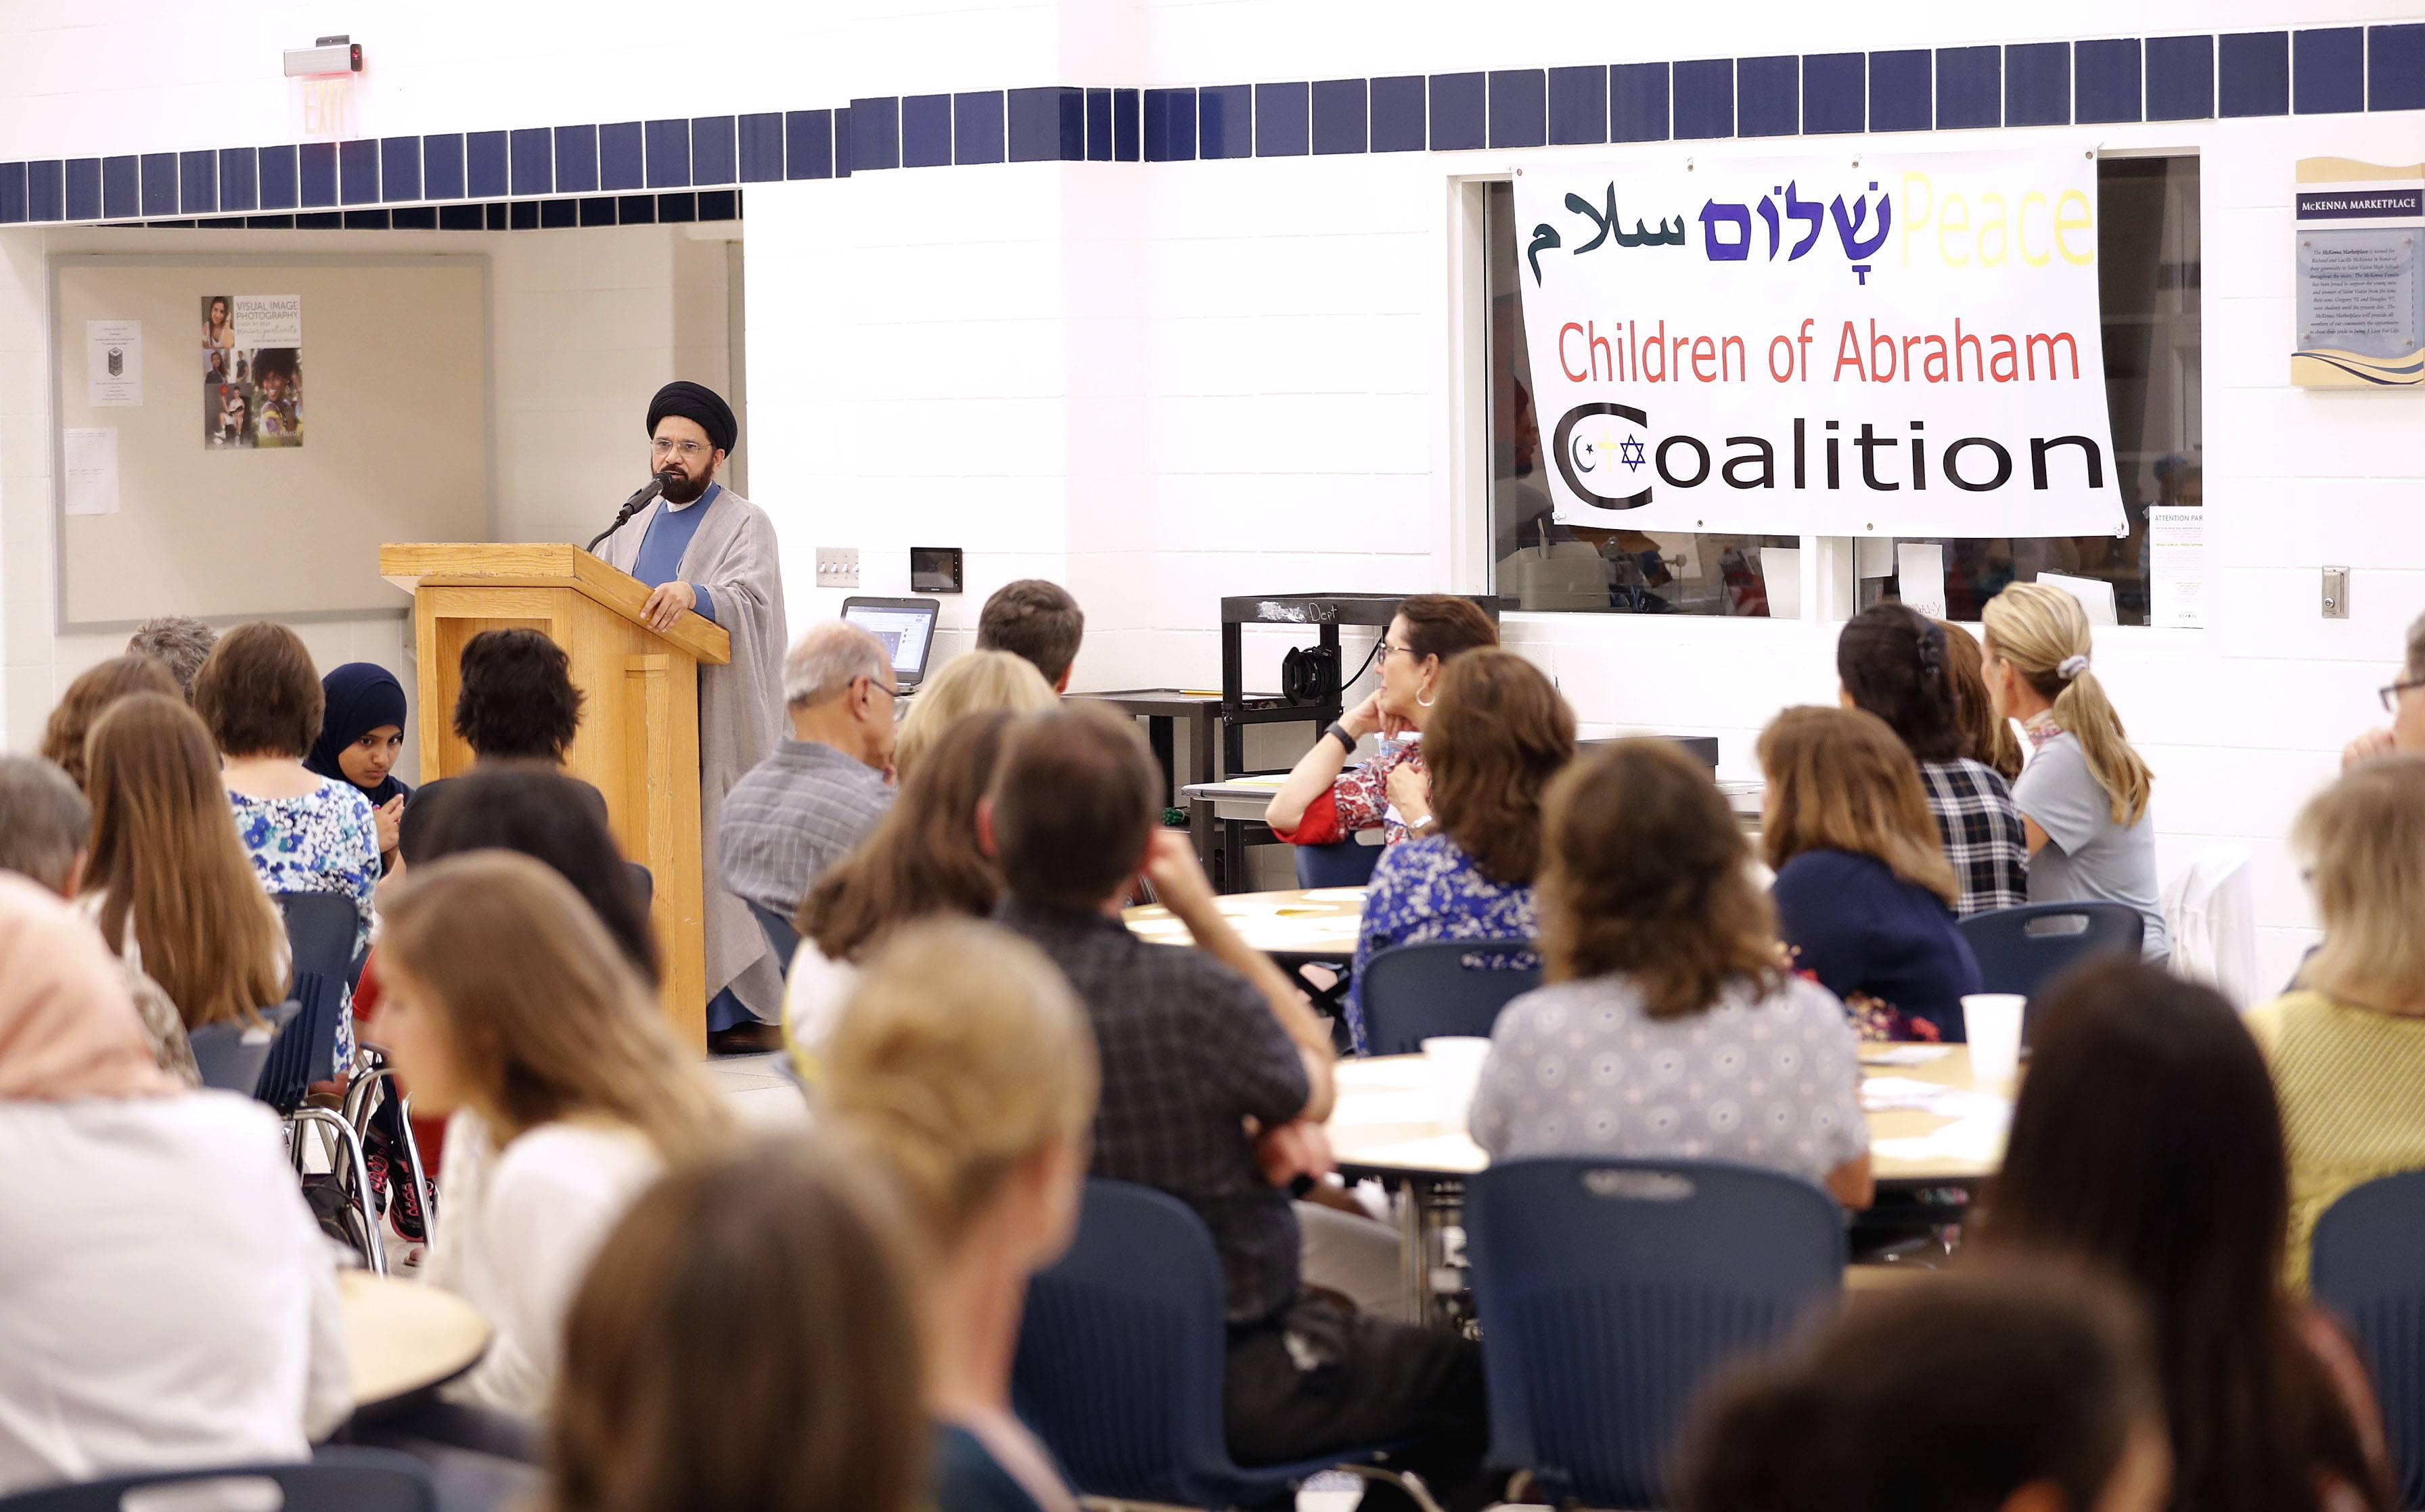 Moulana Mehboob Mehdi of the Islamic Education Center in Glendale Heights speaks during the Children of Abraham Coalition's seventh annual 9/11 interfaith Potluck For Peace Tuesday at St. Viator High School in Arlington Heights.